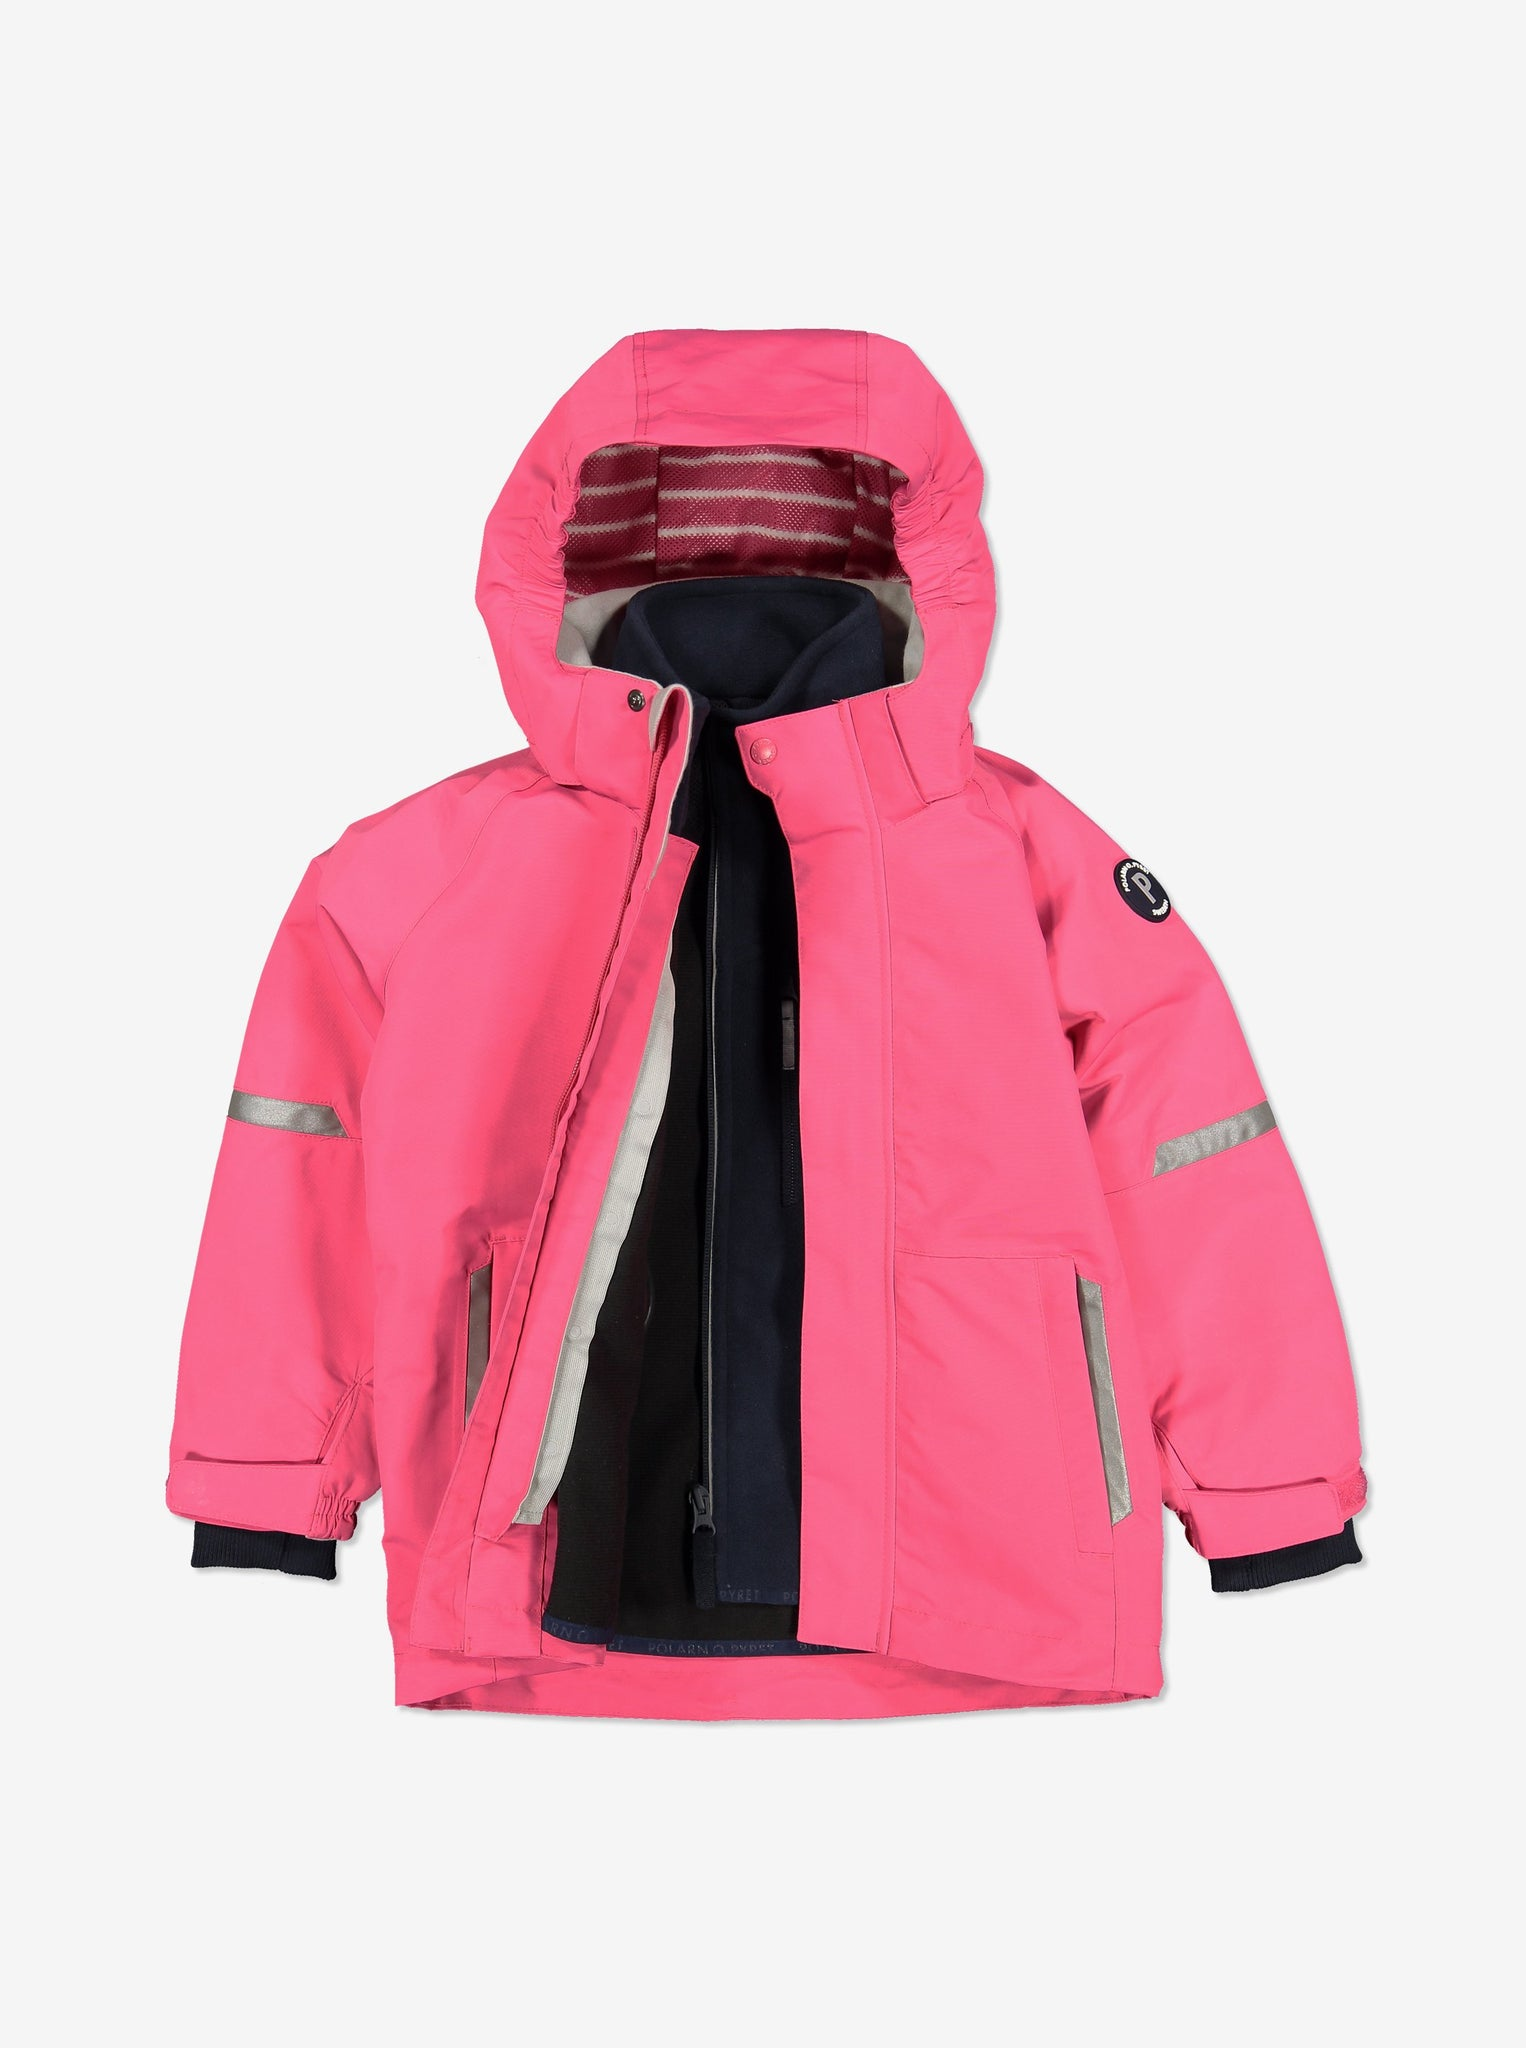 Pink, kids waterproof jacket made of shell fabric, comes with detachable hood, paired with a navy, kids fleece jacket.